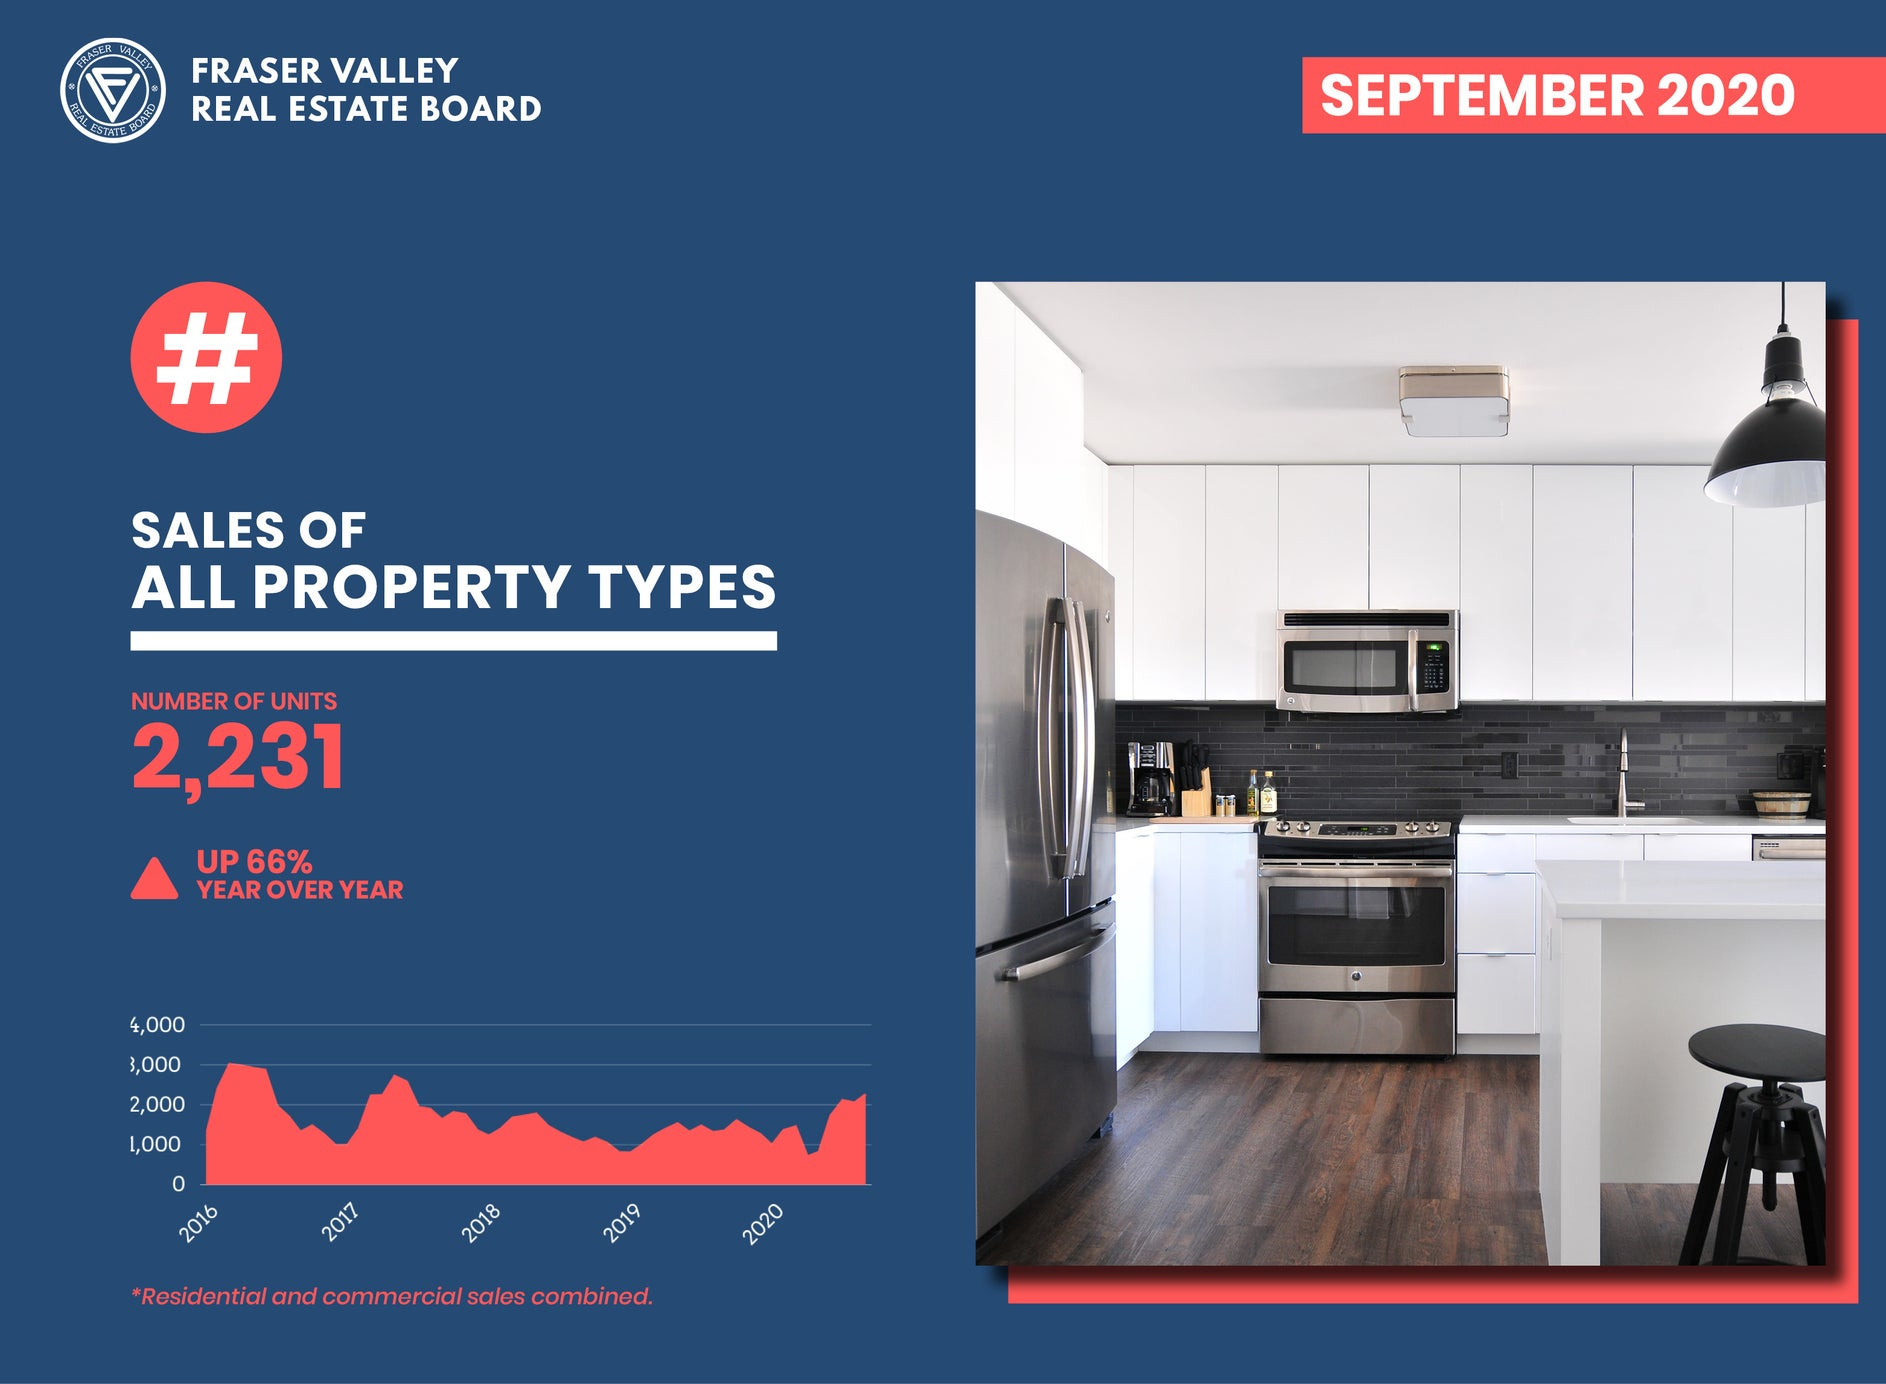 Fraser Valley Housing Market Report September 2020 – Sales of All Property Types